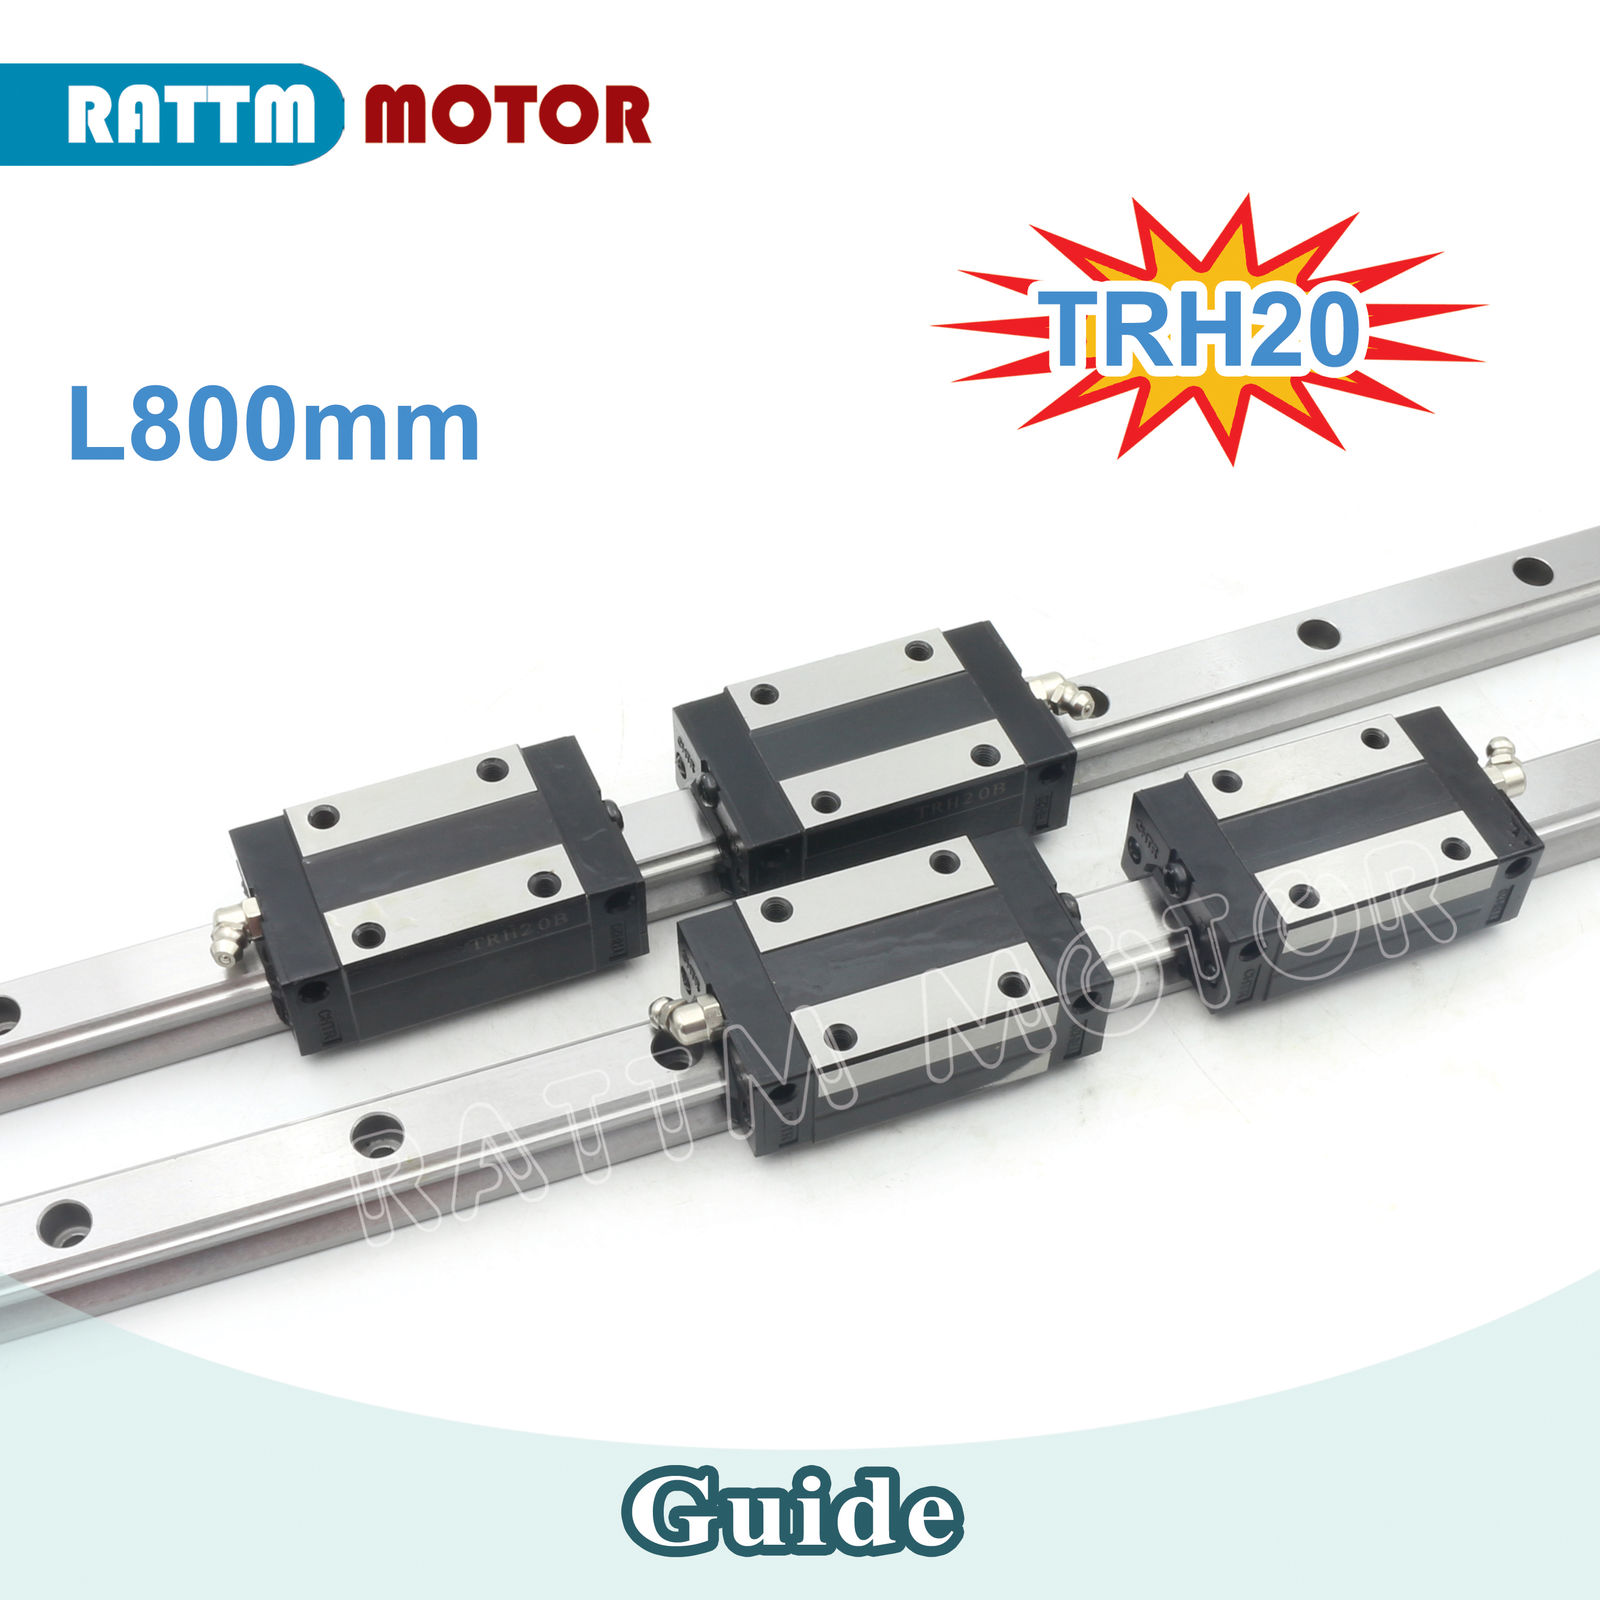 20mm Square Linear Rail Guideway TRH20 800mm &TRH20B Slider Block for CNC Router + TRH20B Square block high precision low manufacturer price 1pc trh20 length 1800mm linear guide rail linear guideway for cnc machiner